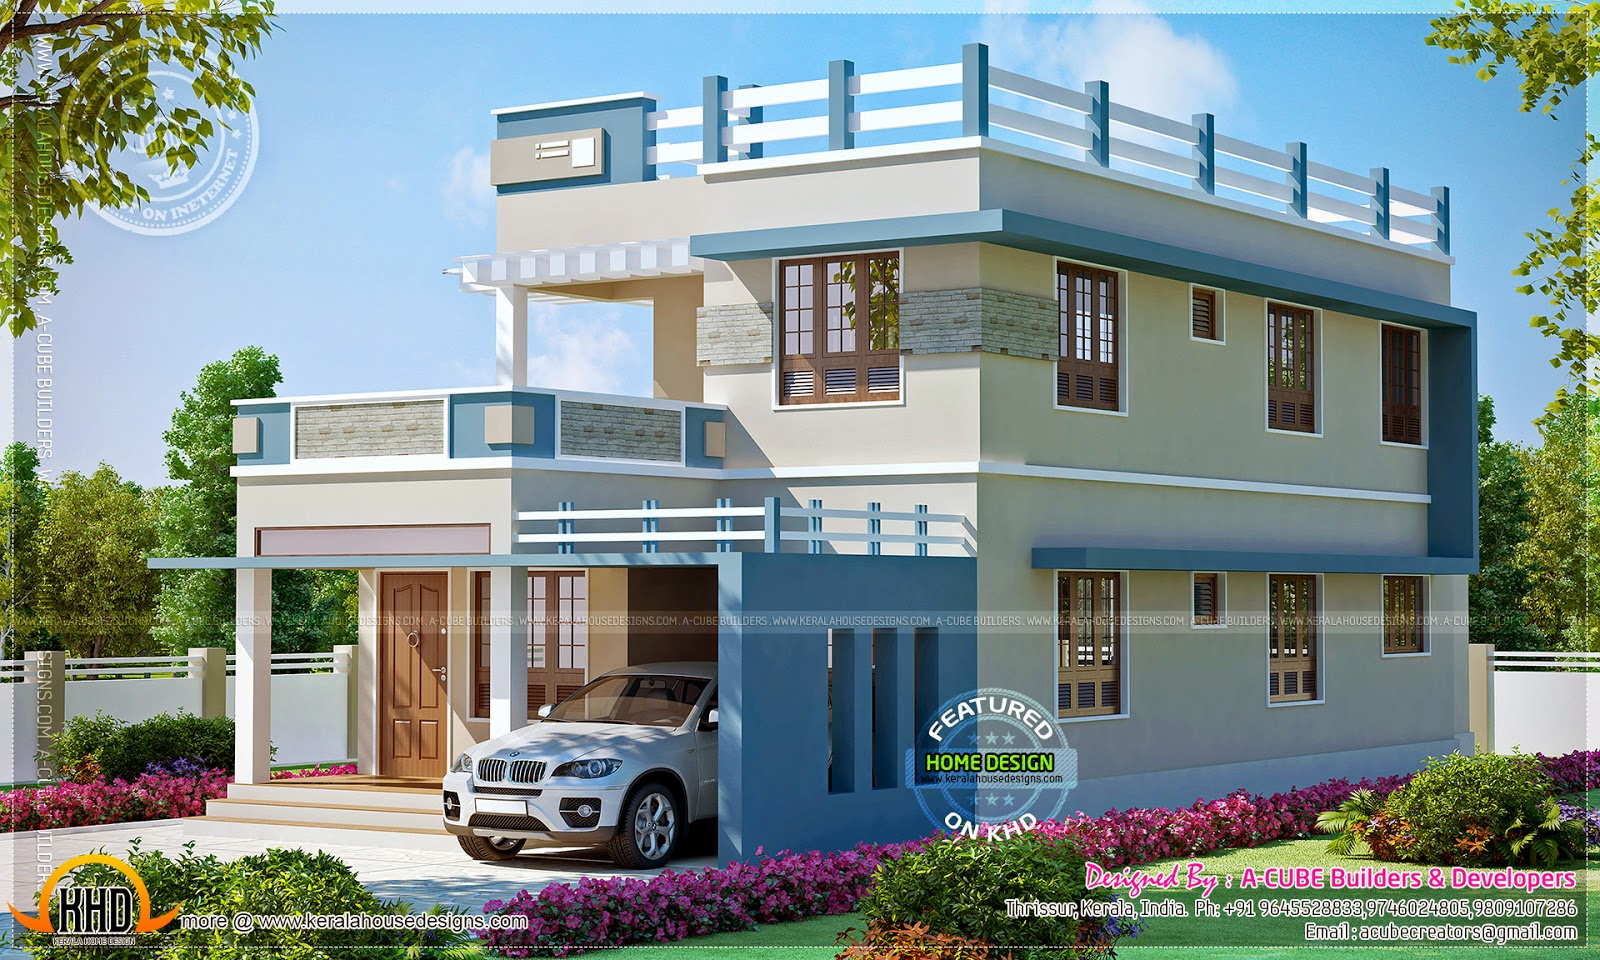 2260 square feet new home design kerala home design and floor plans New home layouts